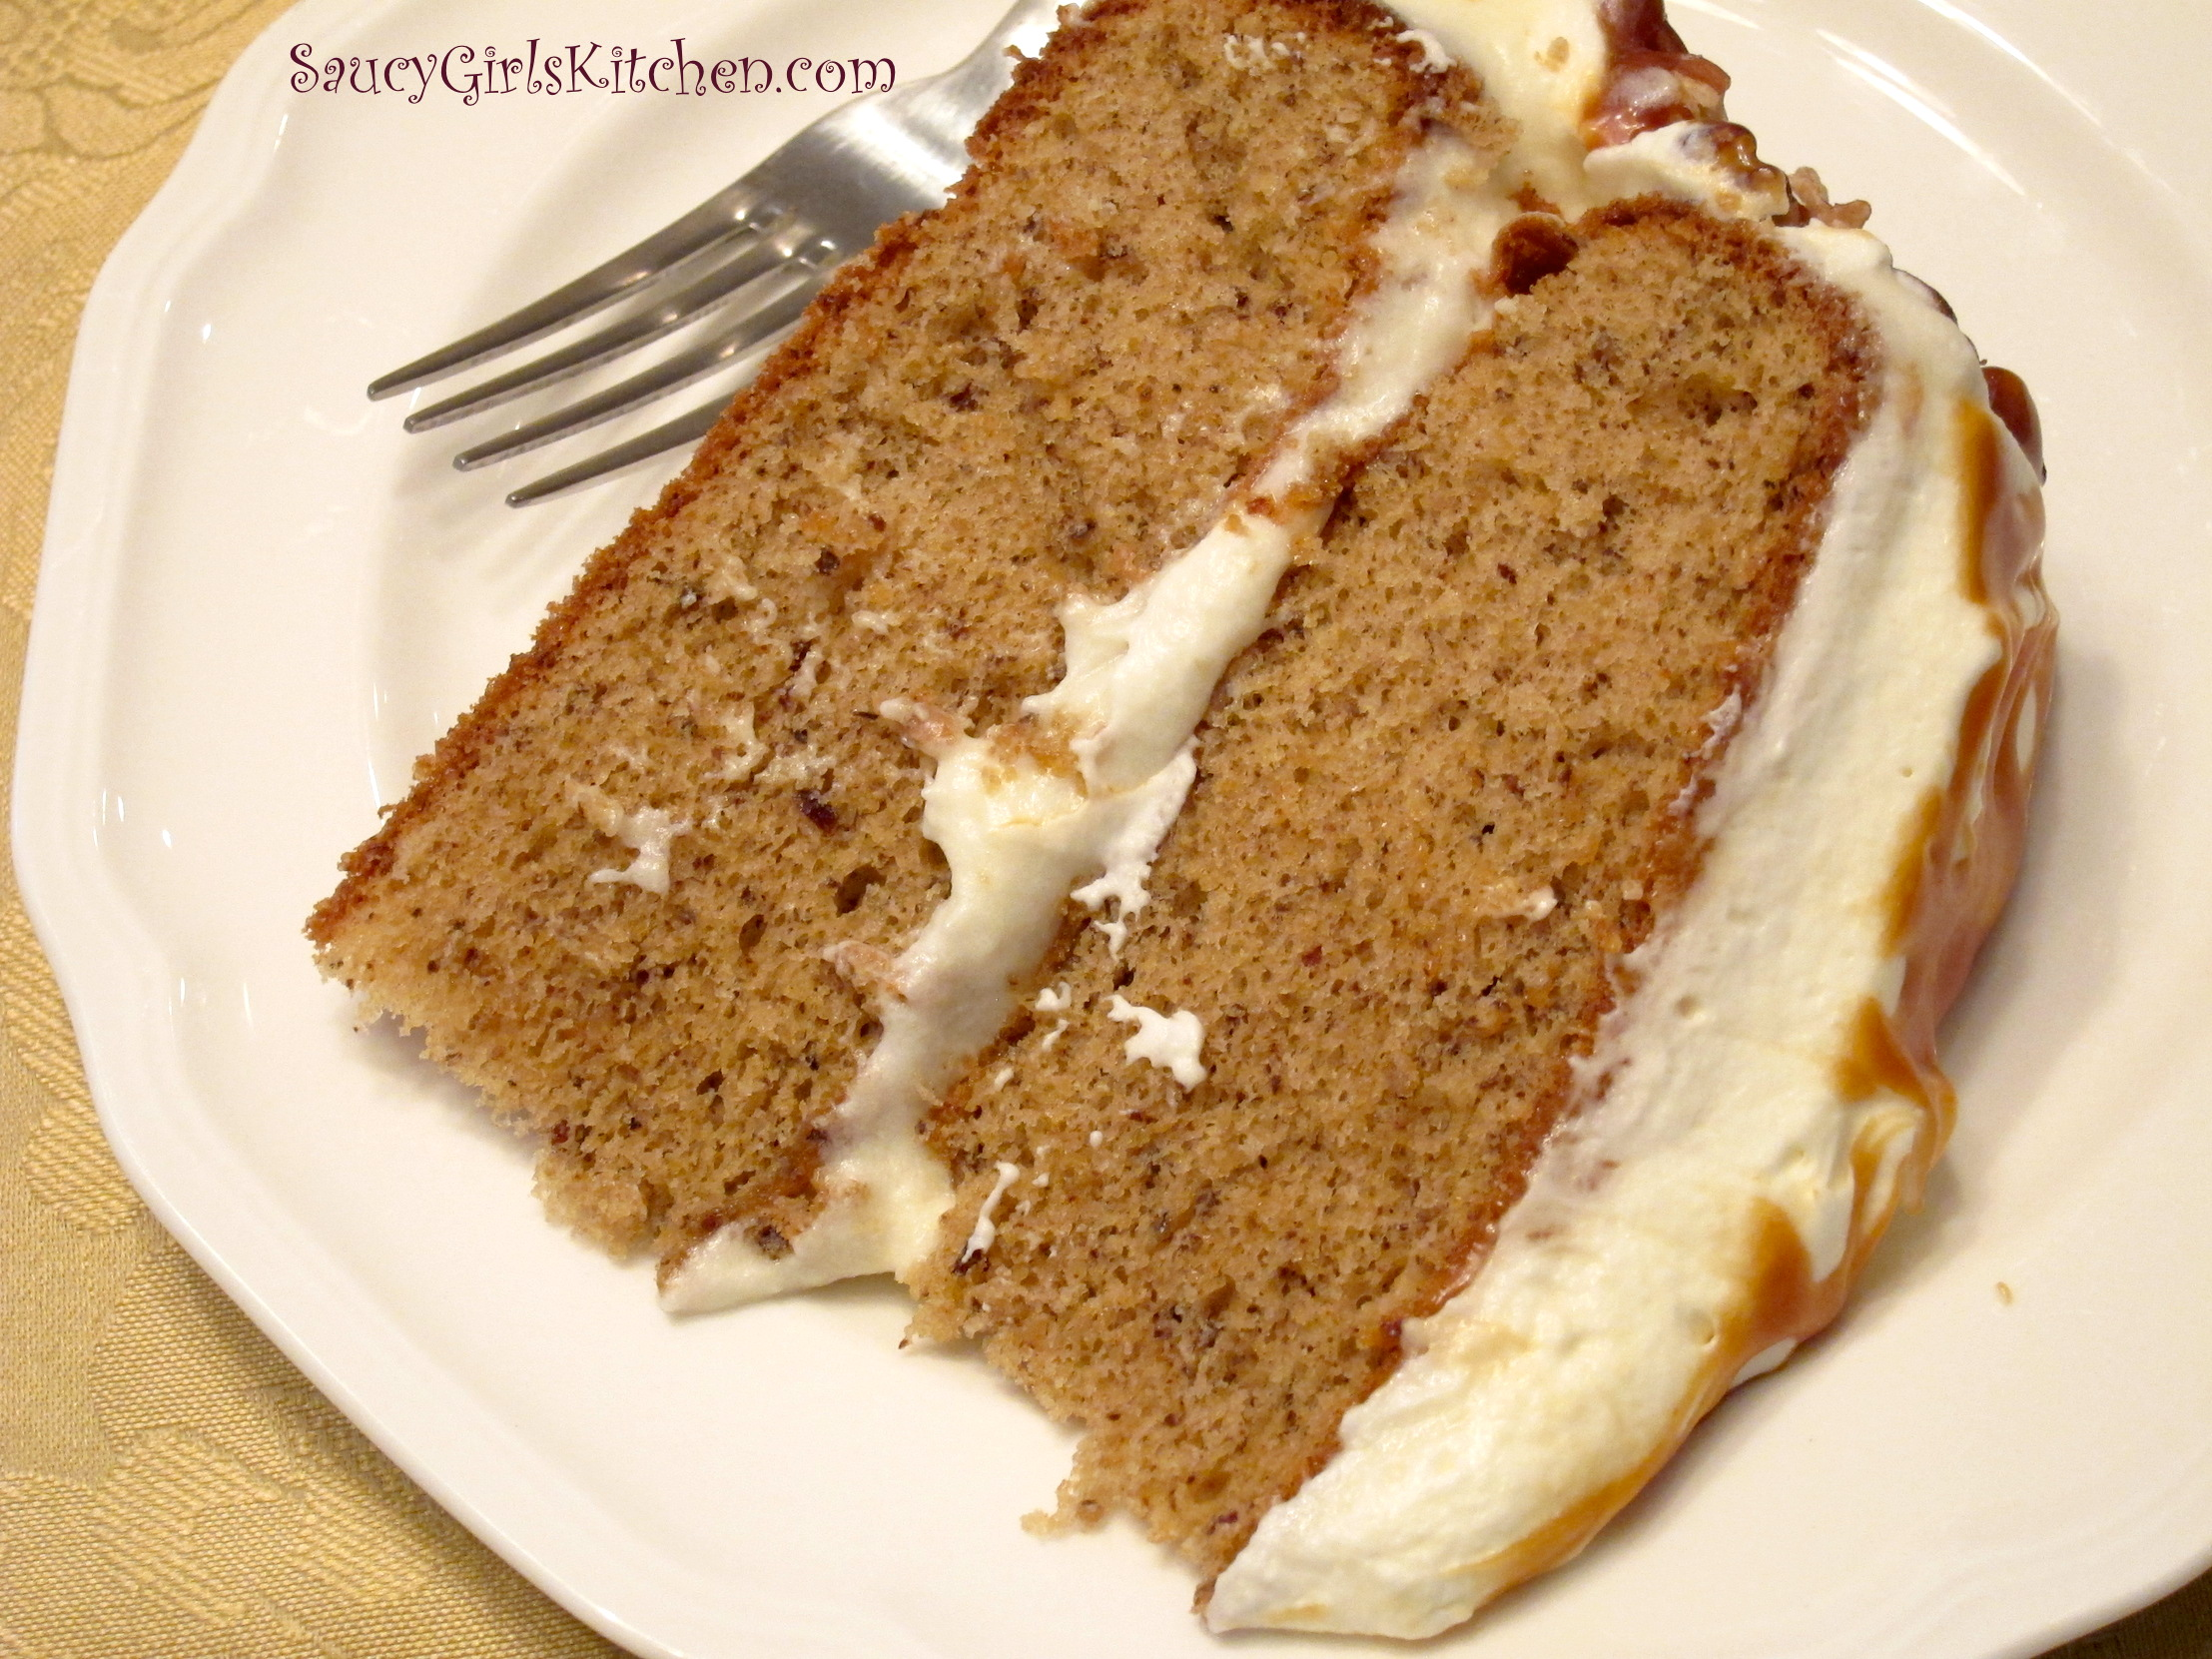 A slice of Butter Pecan Cake